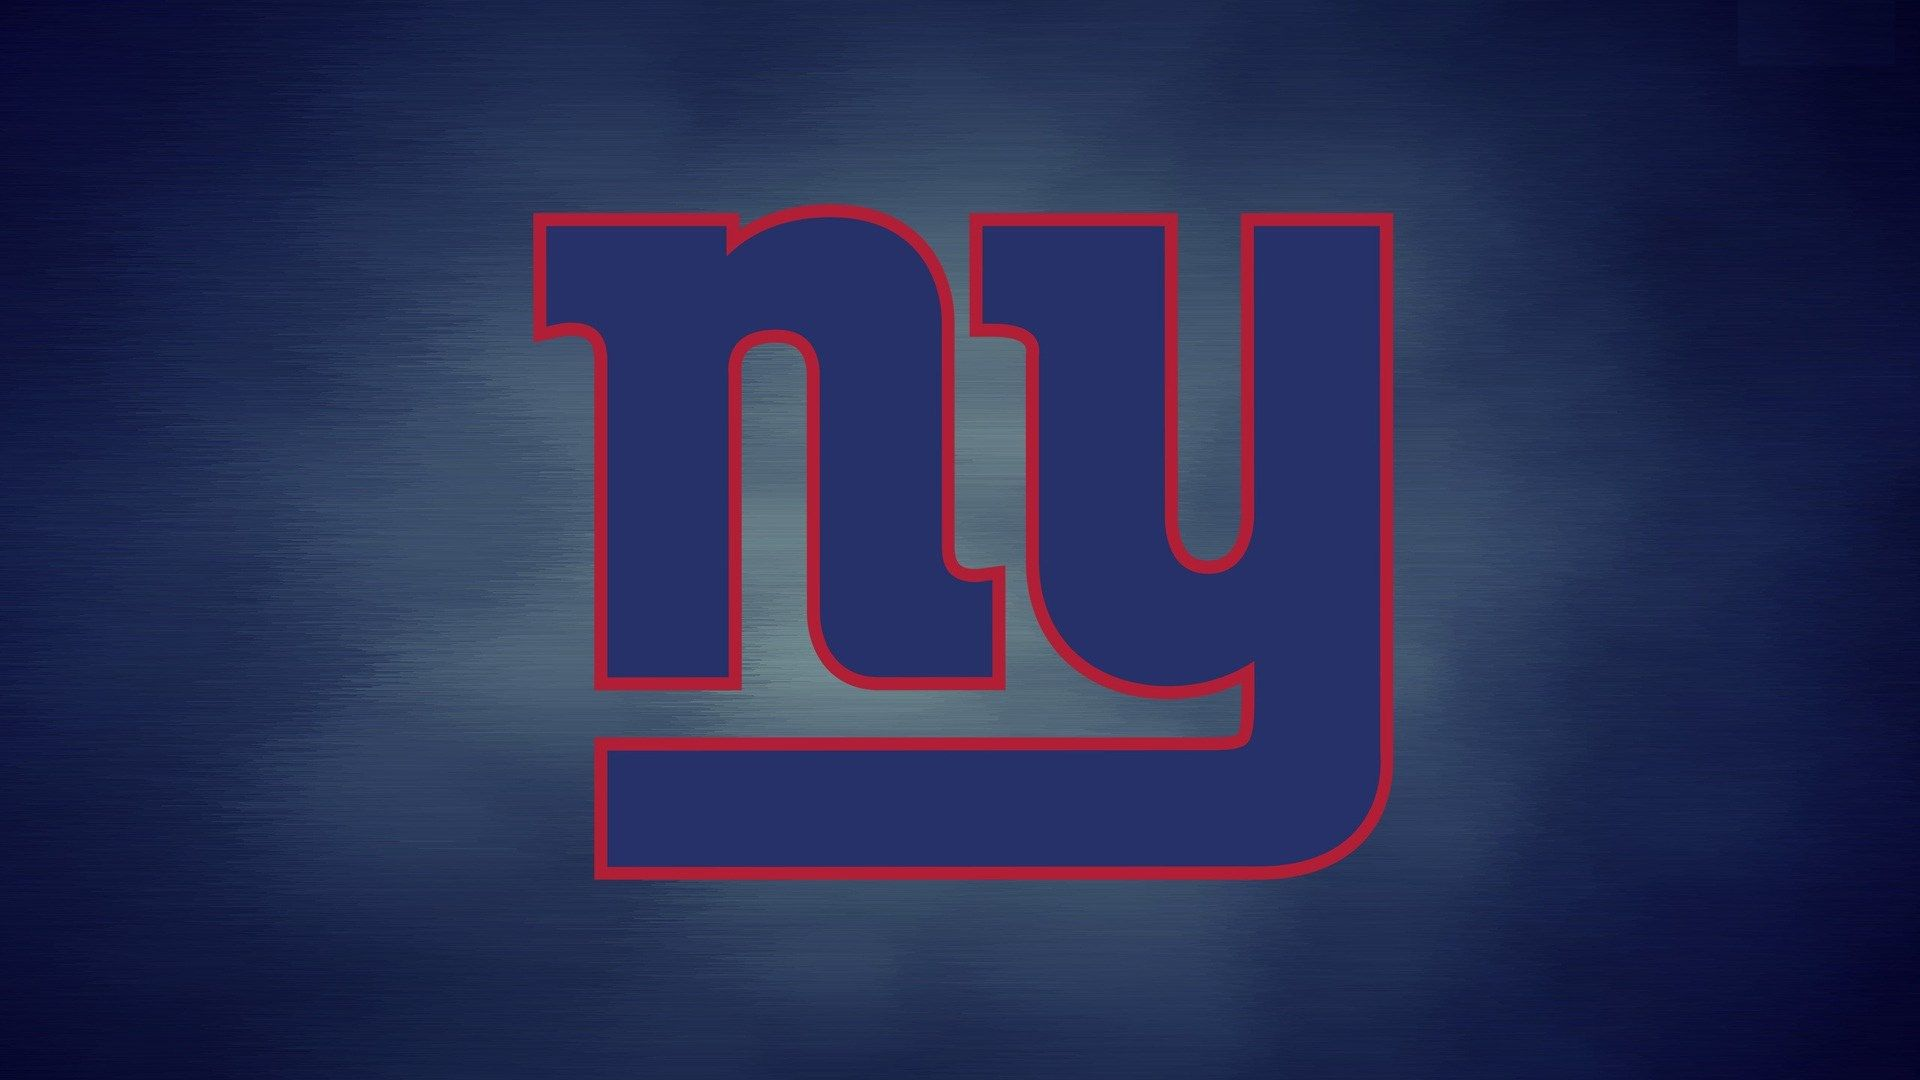 Hd Giants Wallpaper Free New York Giants New York Giants